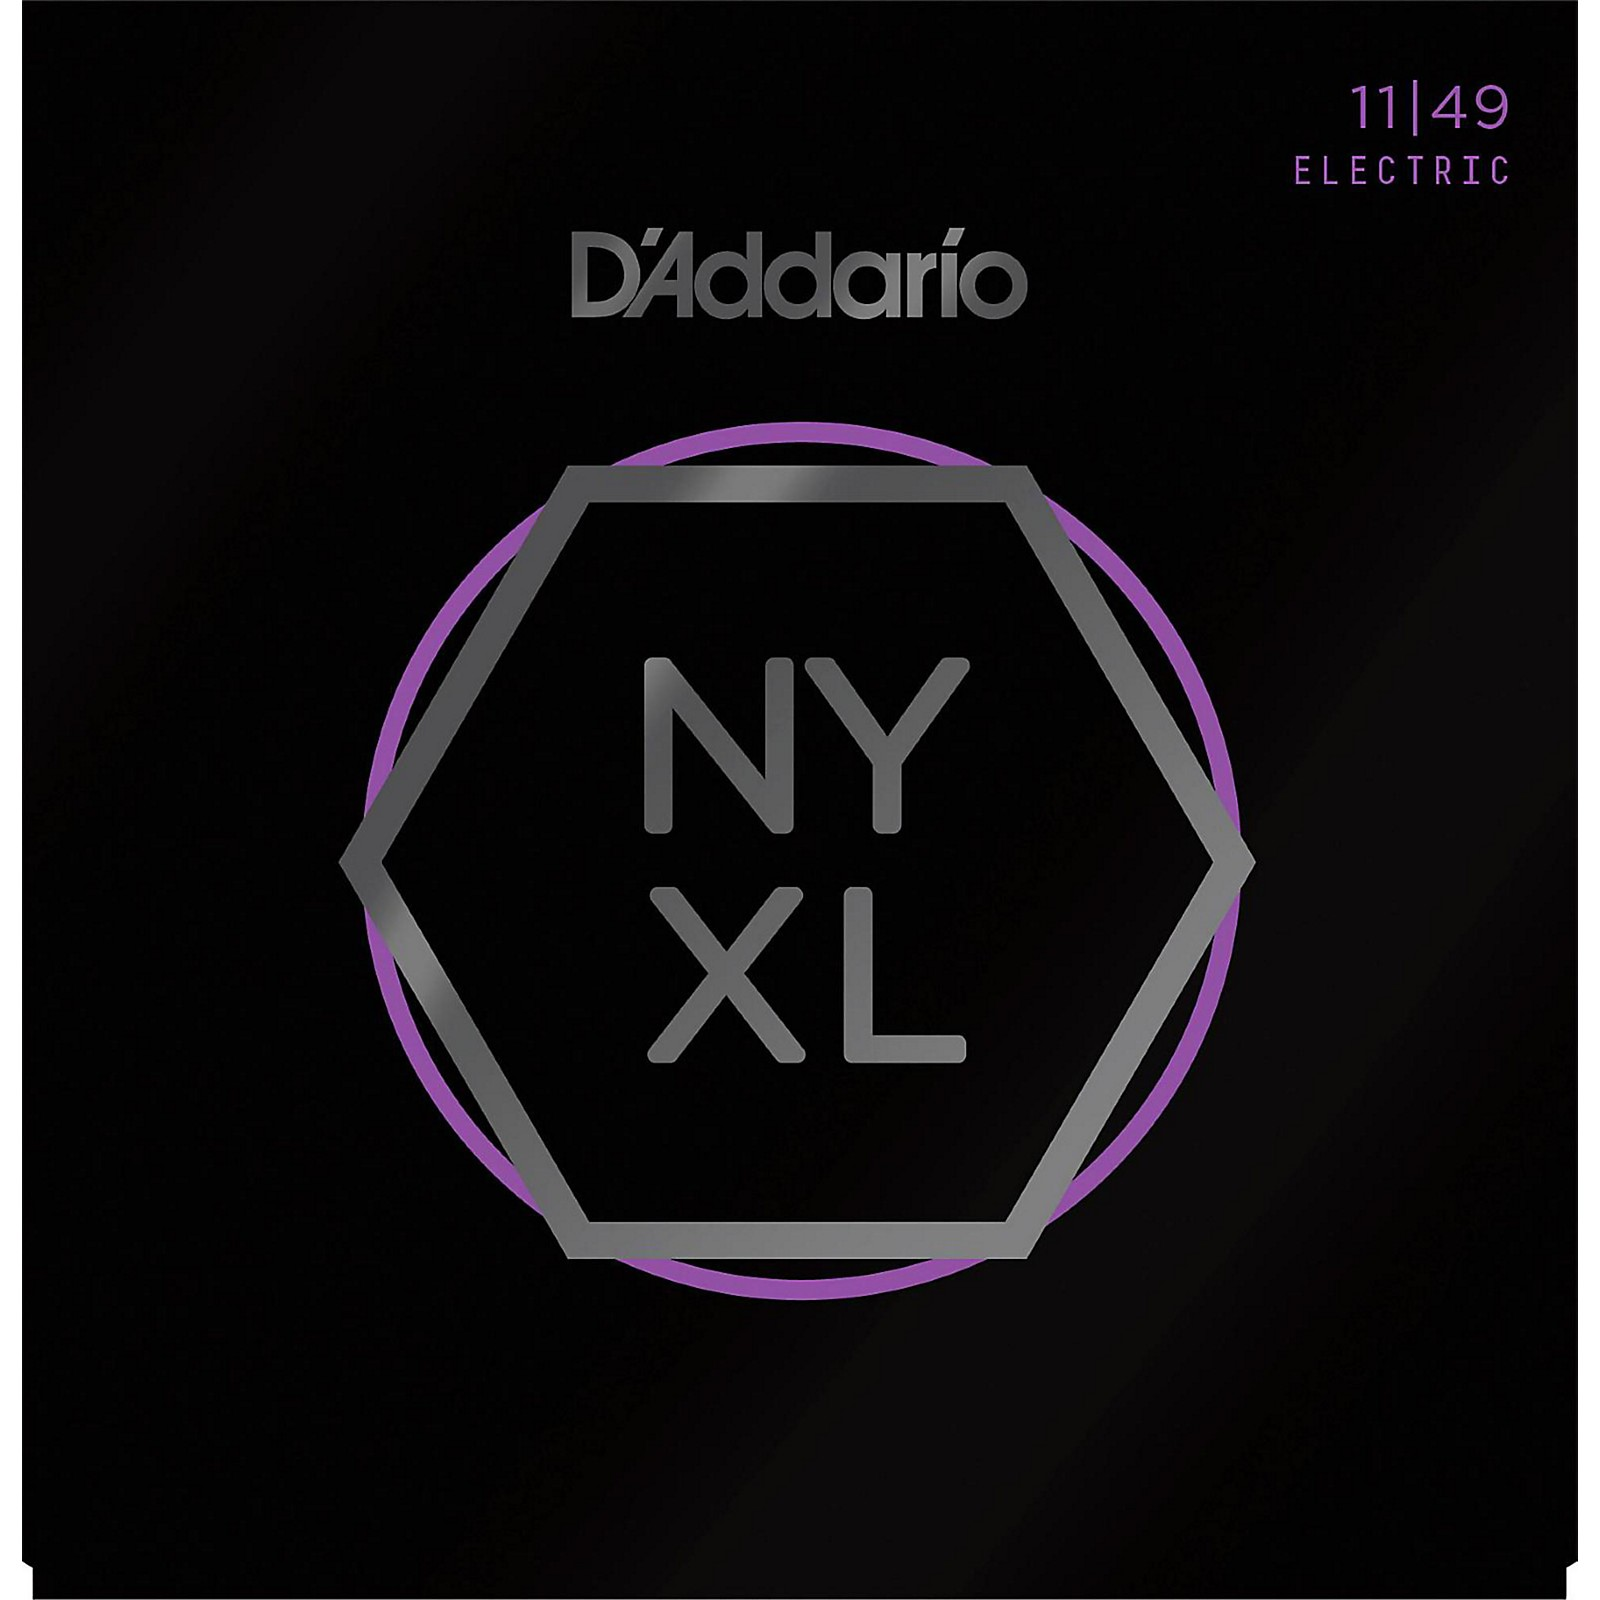 D'Addario NYXL1149 Medium Electric Guitar Strings